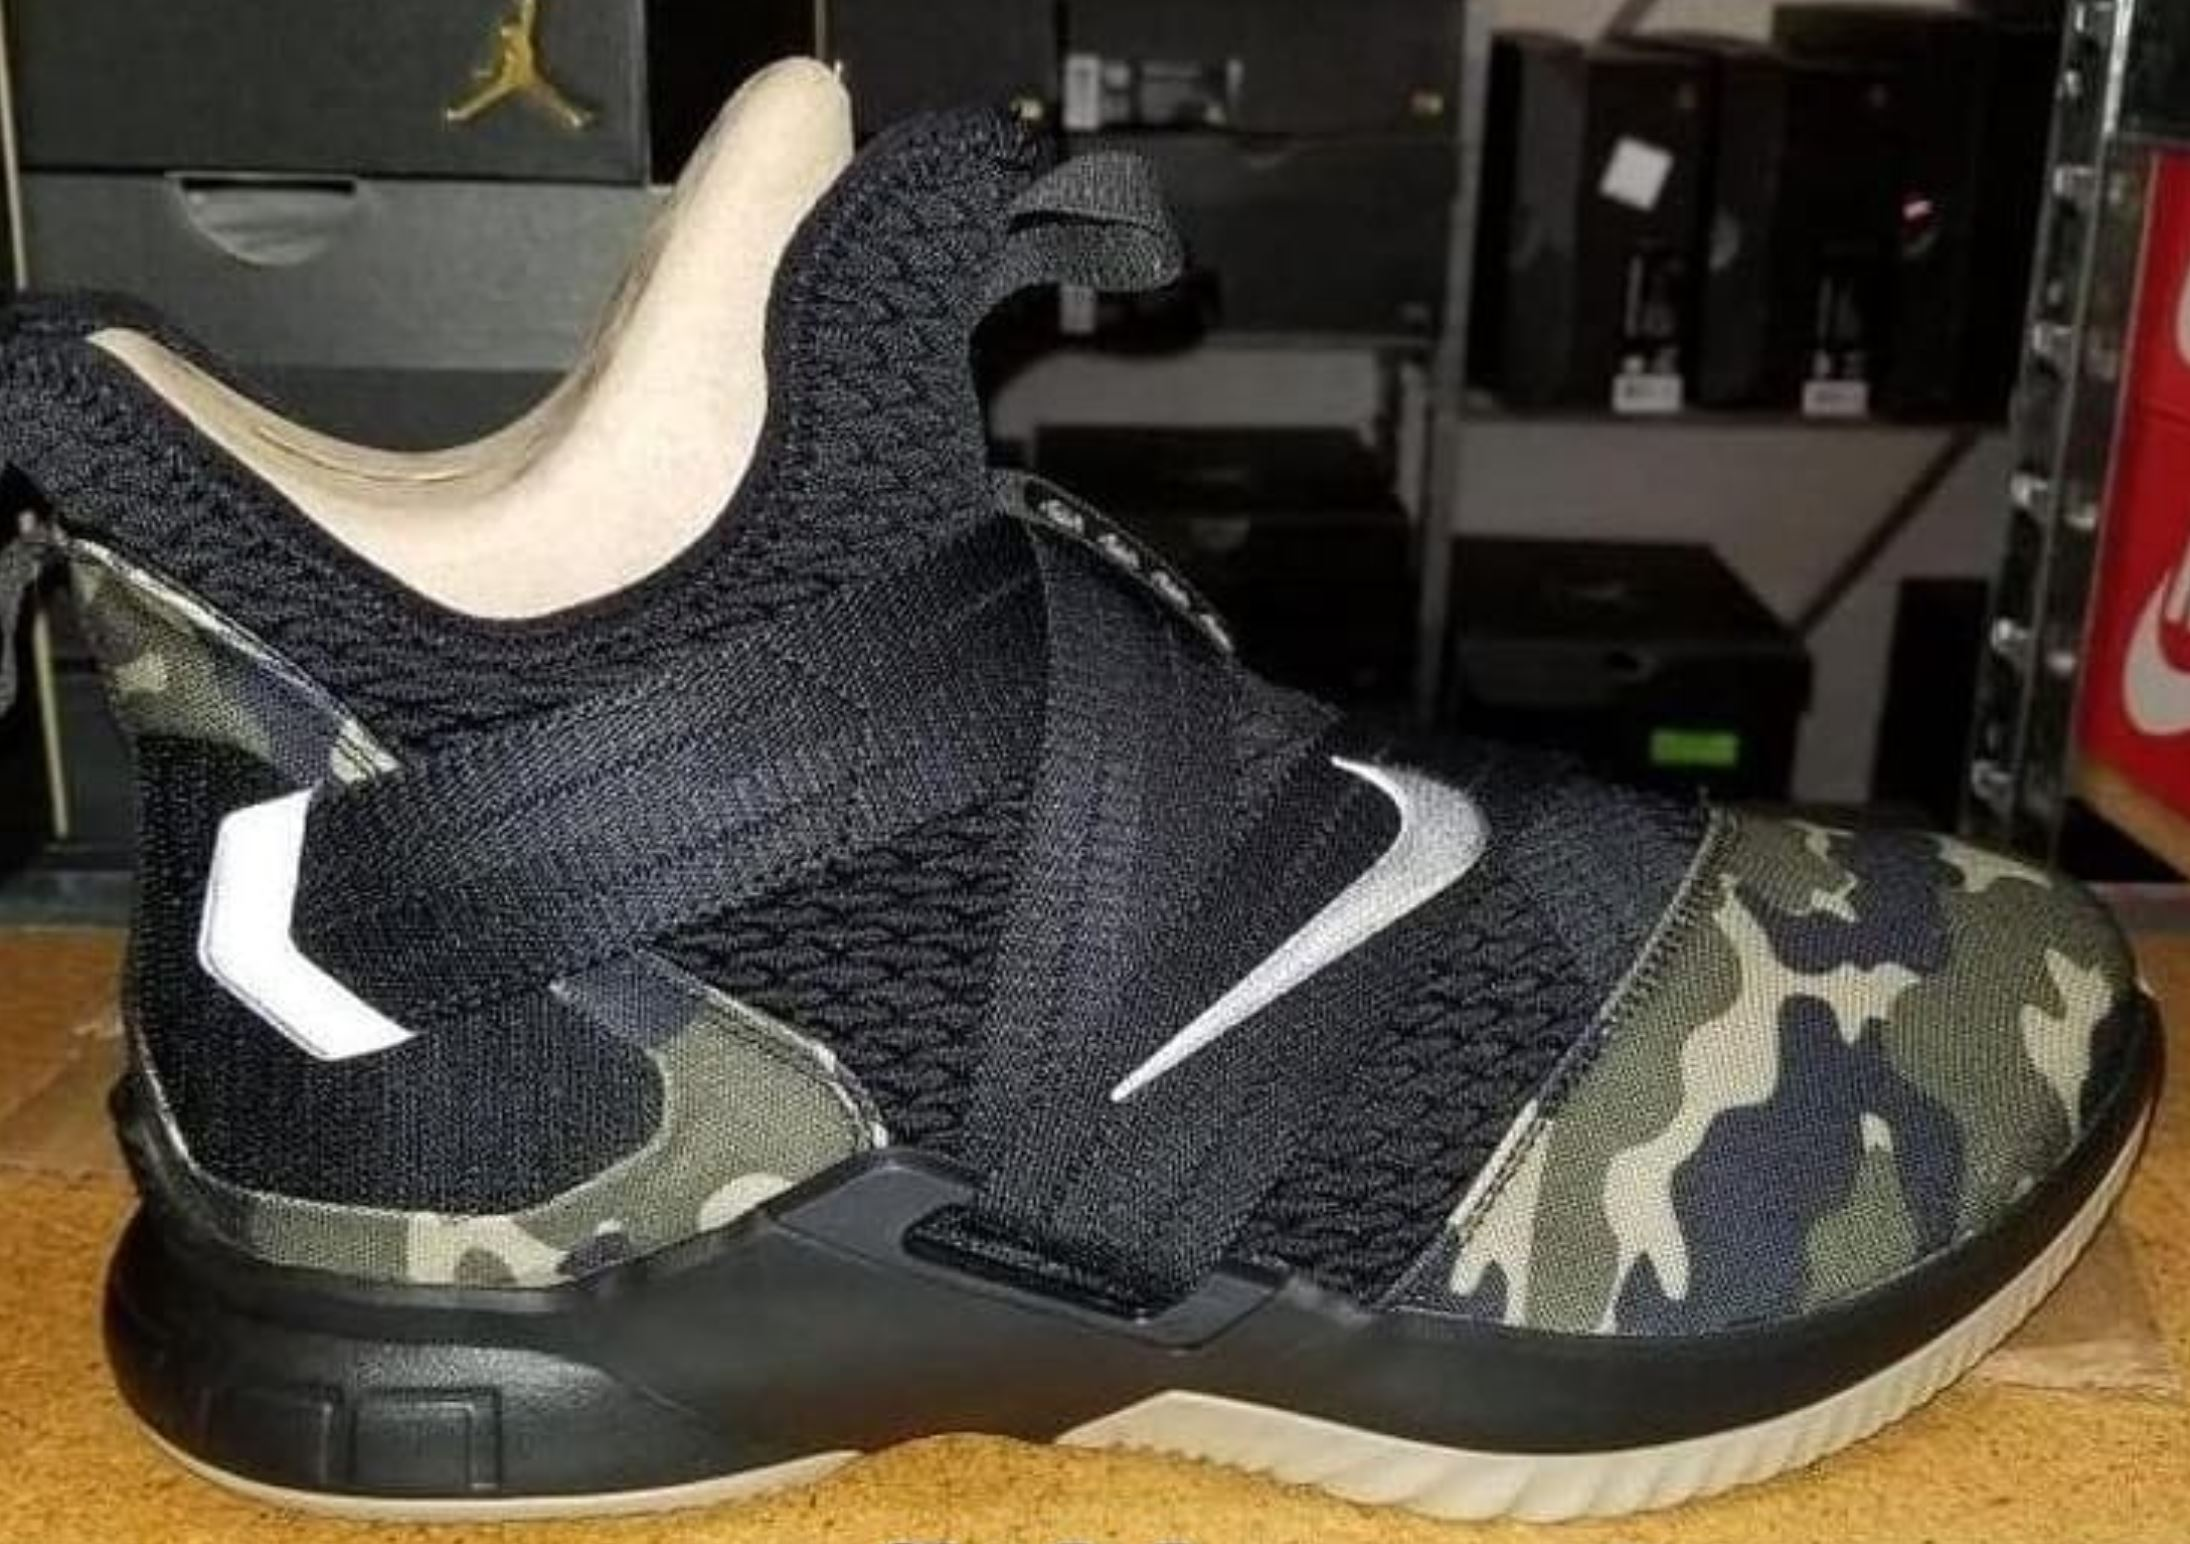 best loved 897db 55efe Here's LeBron's Next Sneaker, the LeBron Soldier 12 ...